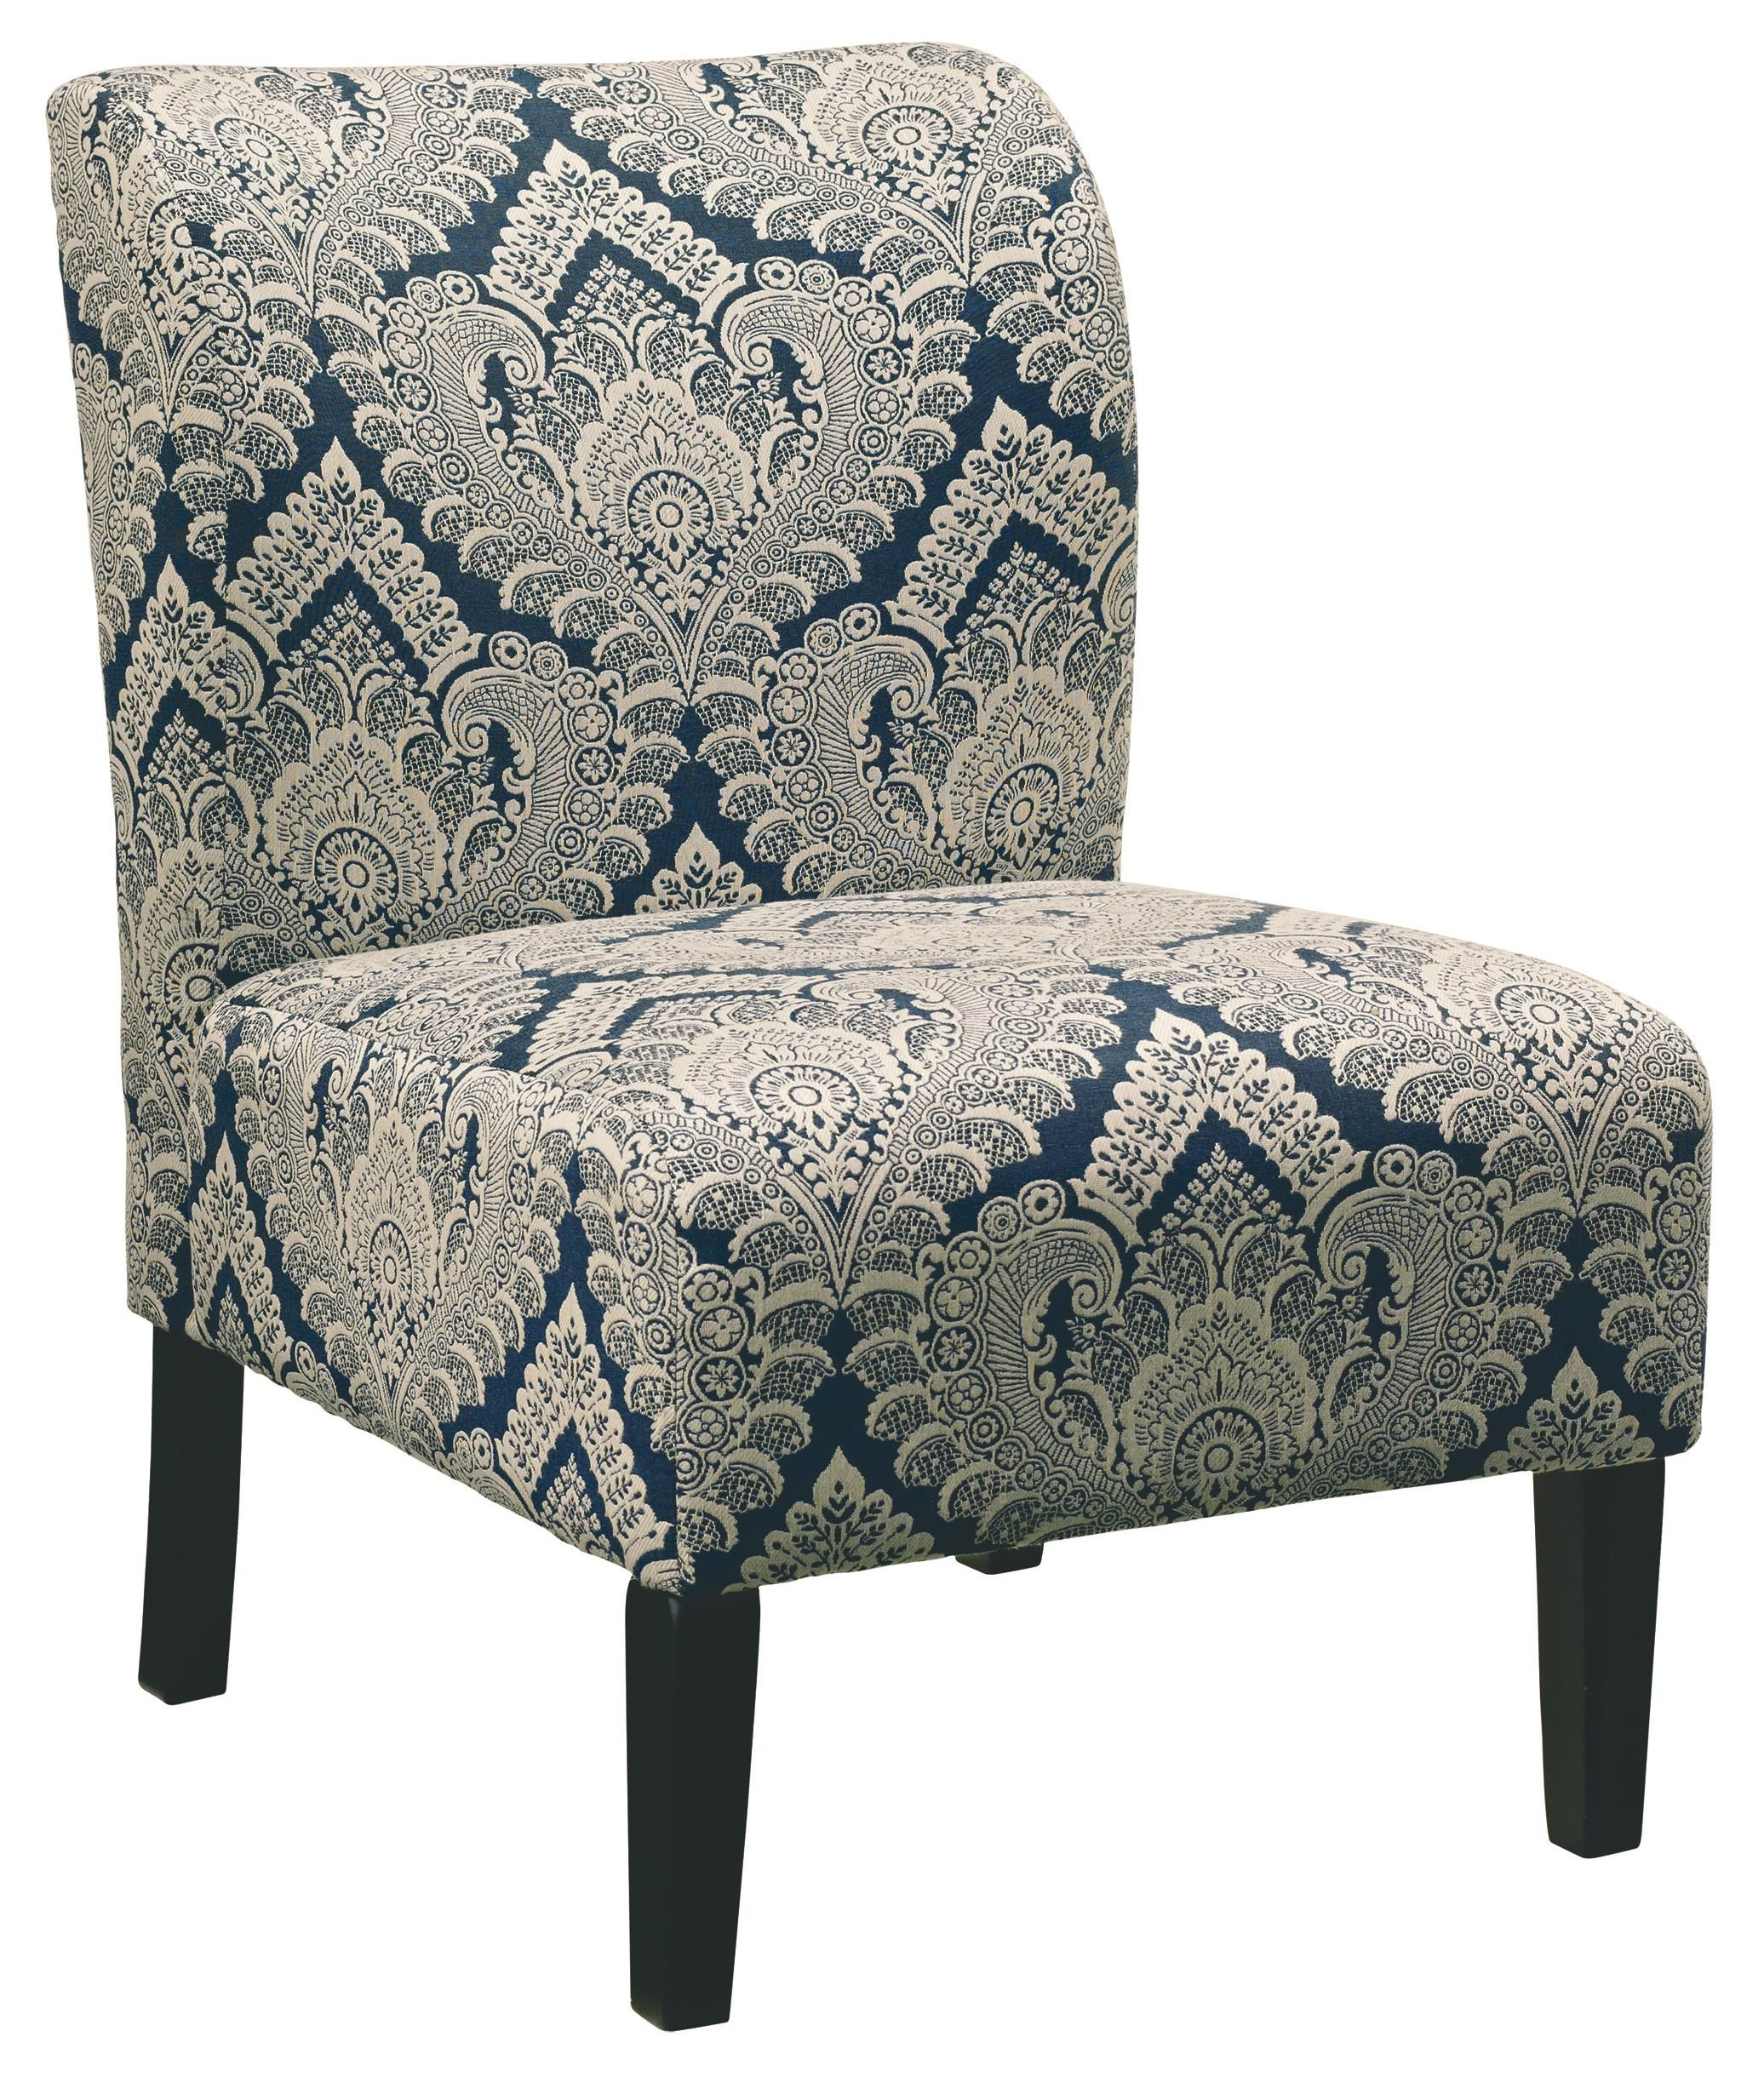 Honnally Contemporary Slipper Style Accent Chair by Signature